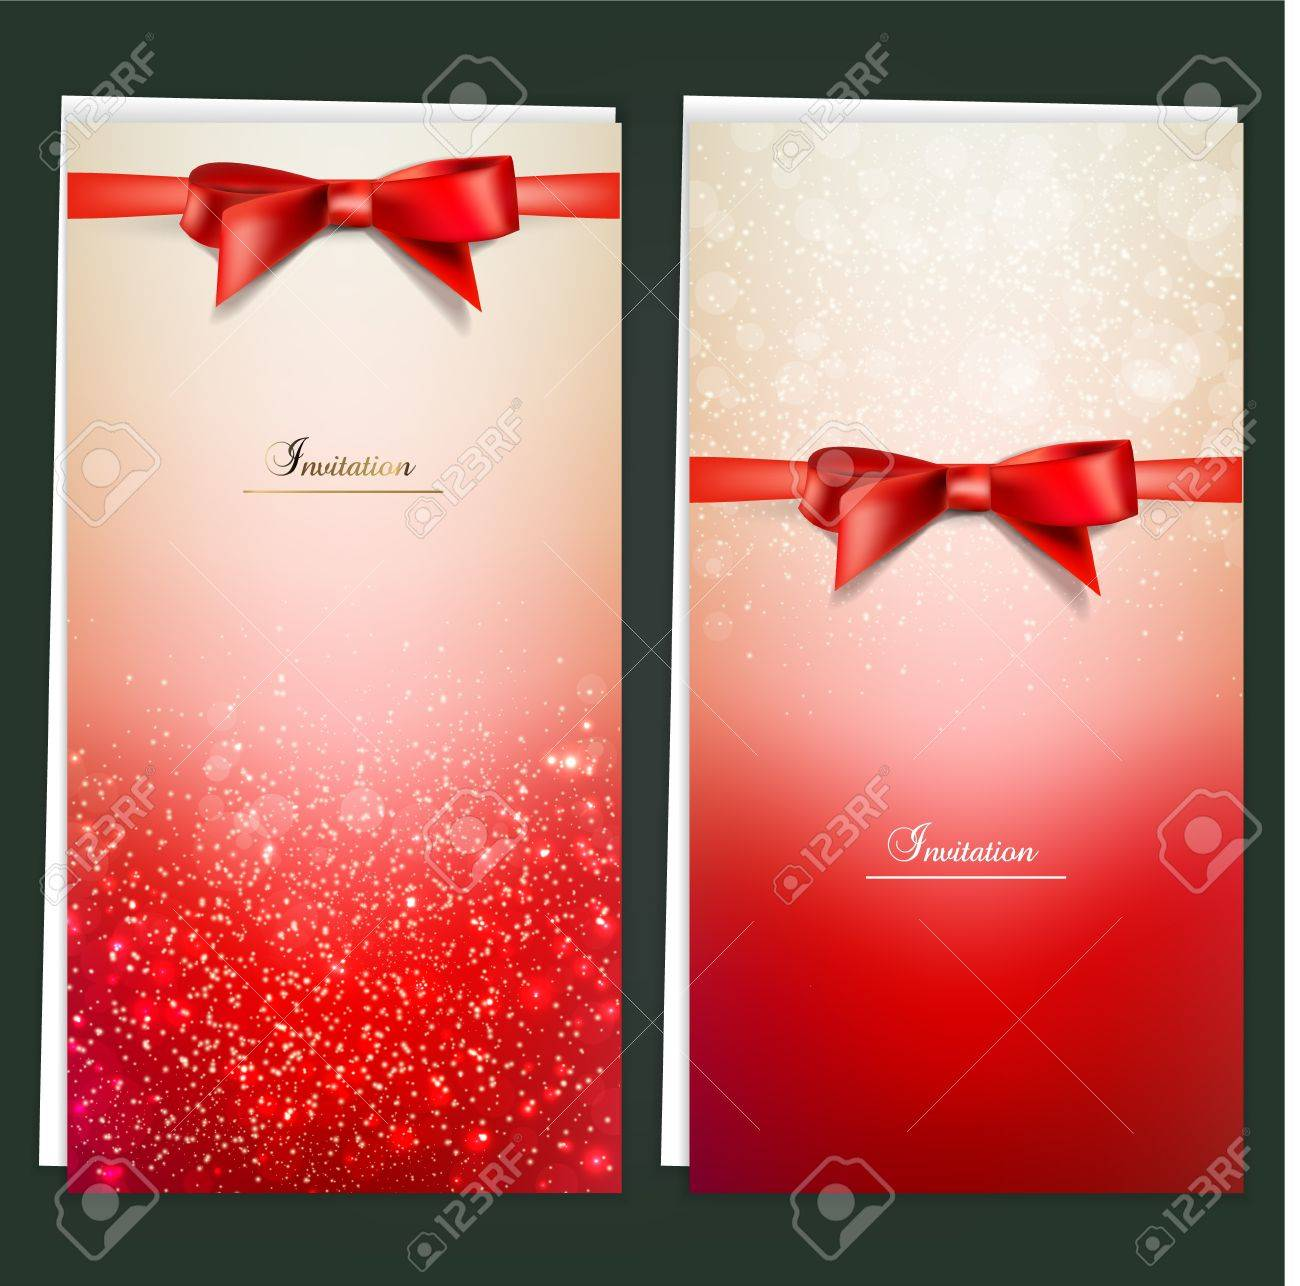 Elegant greeting cards with red bows and copy space. Stock Vector - 16029004